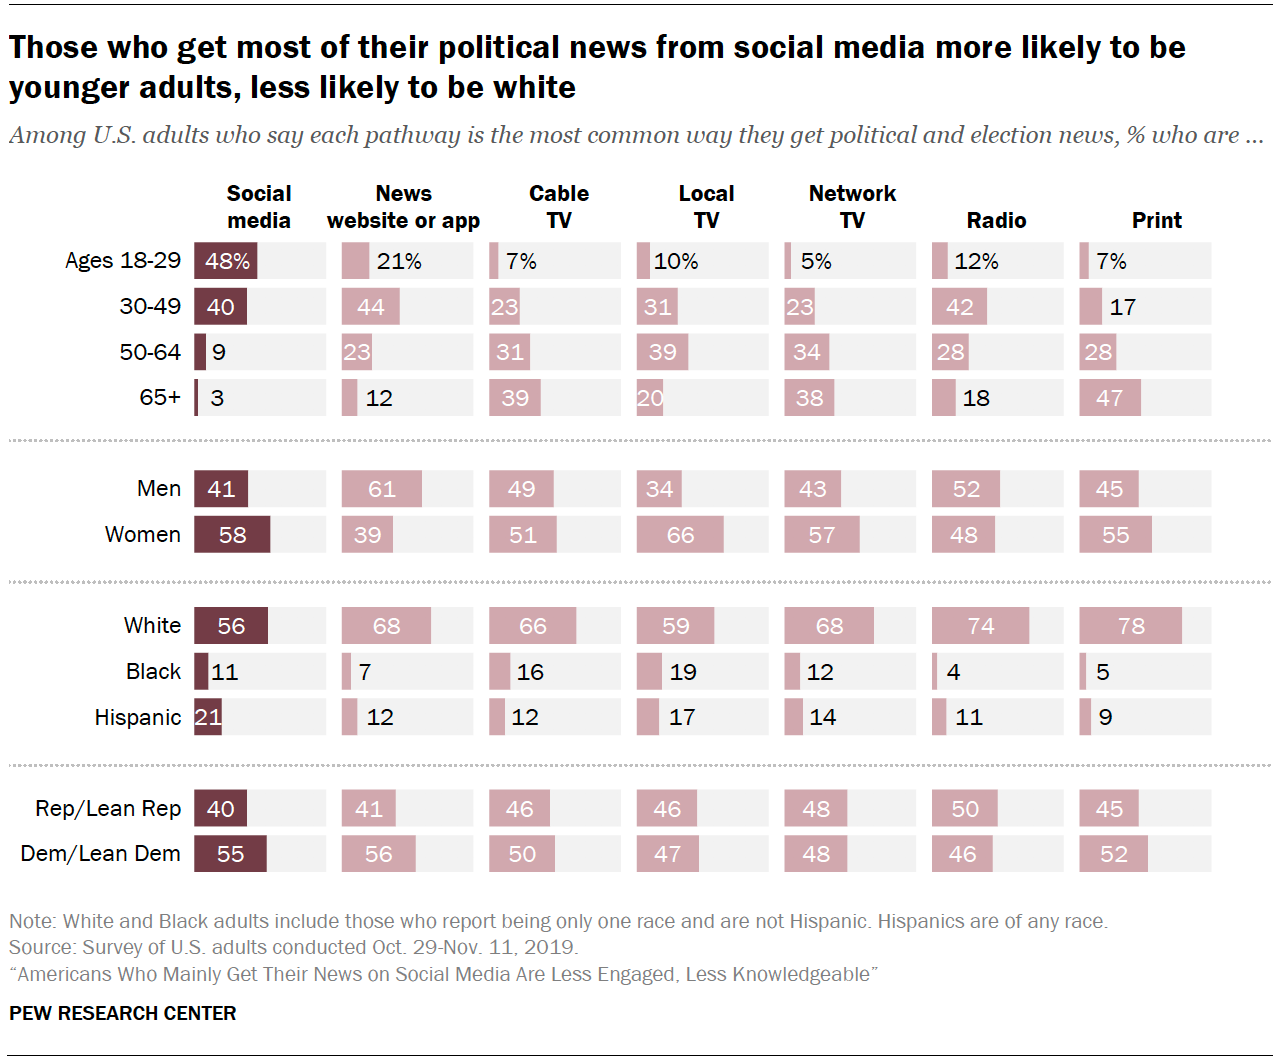 Chart shows those who get most of their political news from social media more likely to be younger adults, less likely to be white